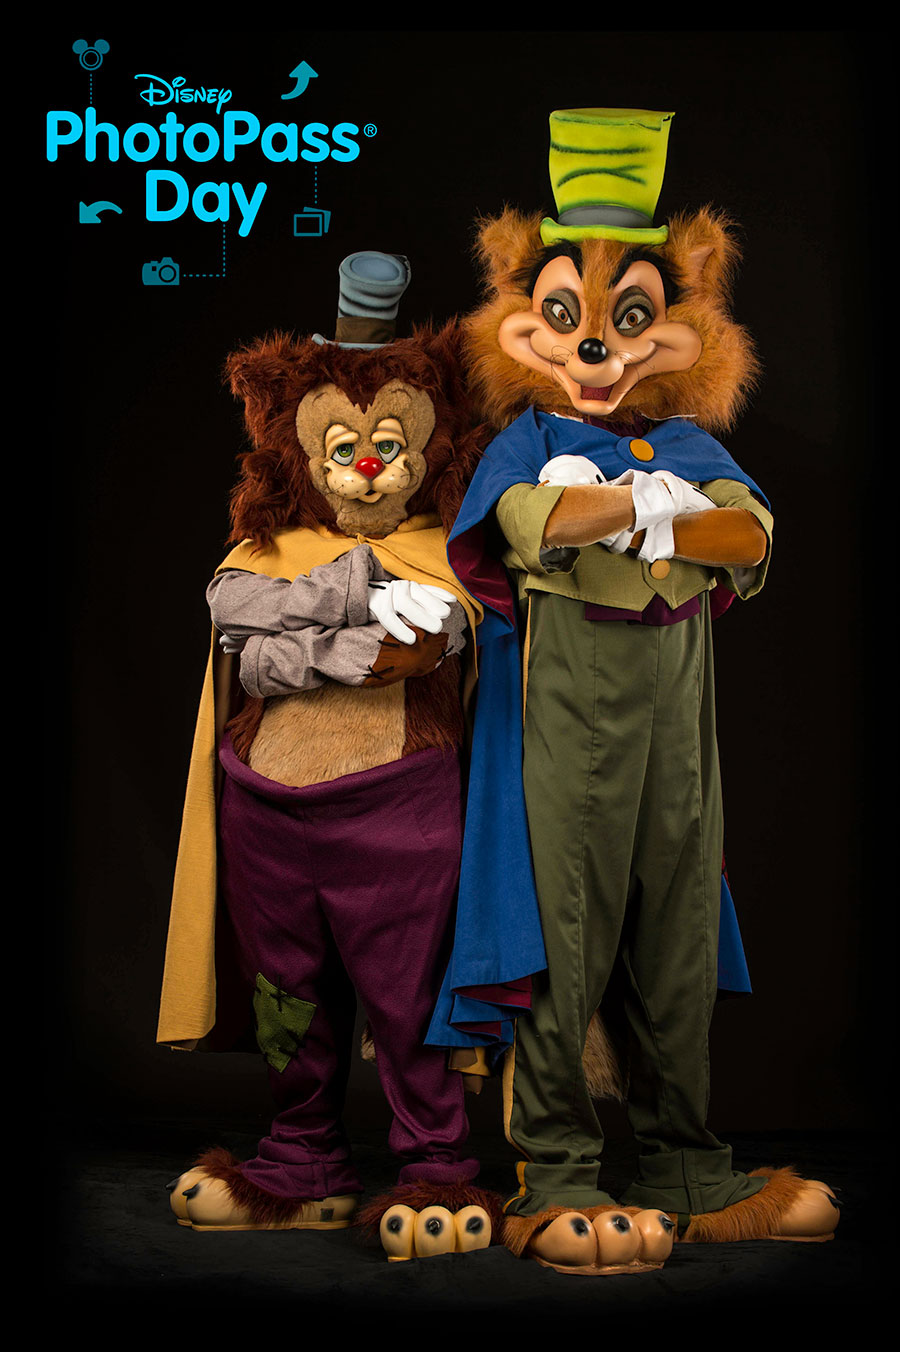 Disney Celebrates PhotoPass Day On August 19th